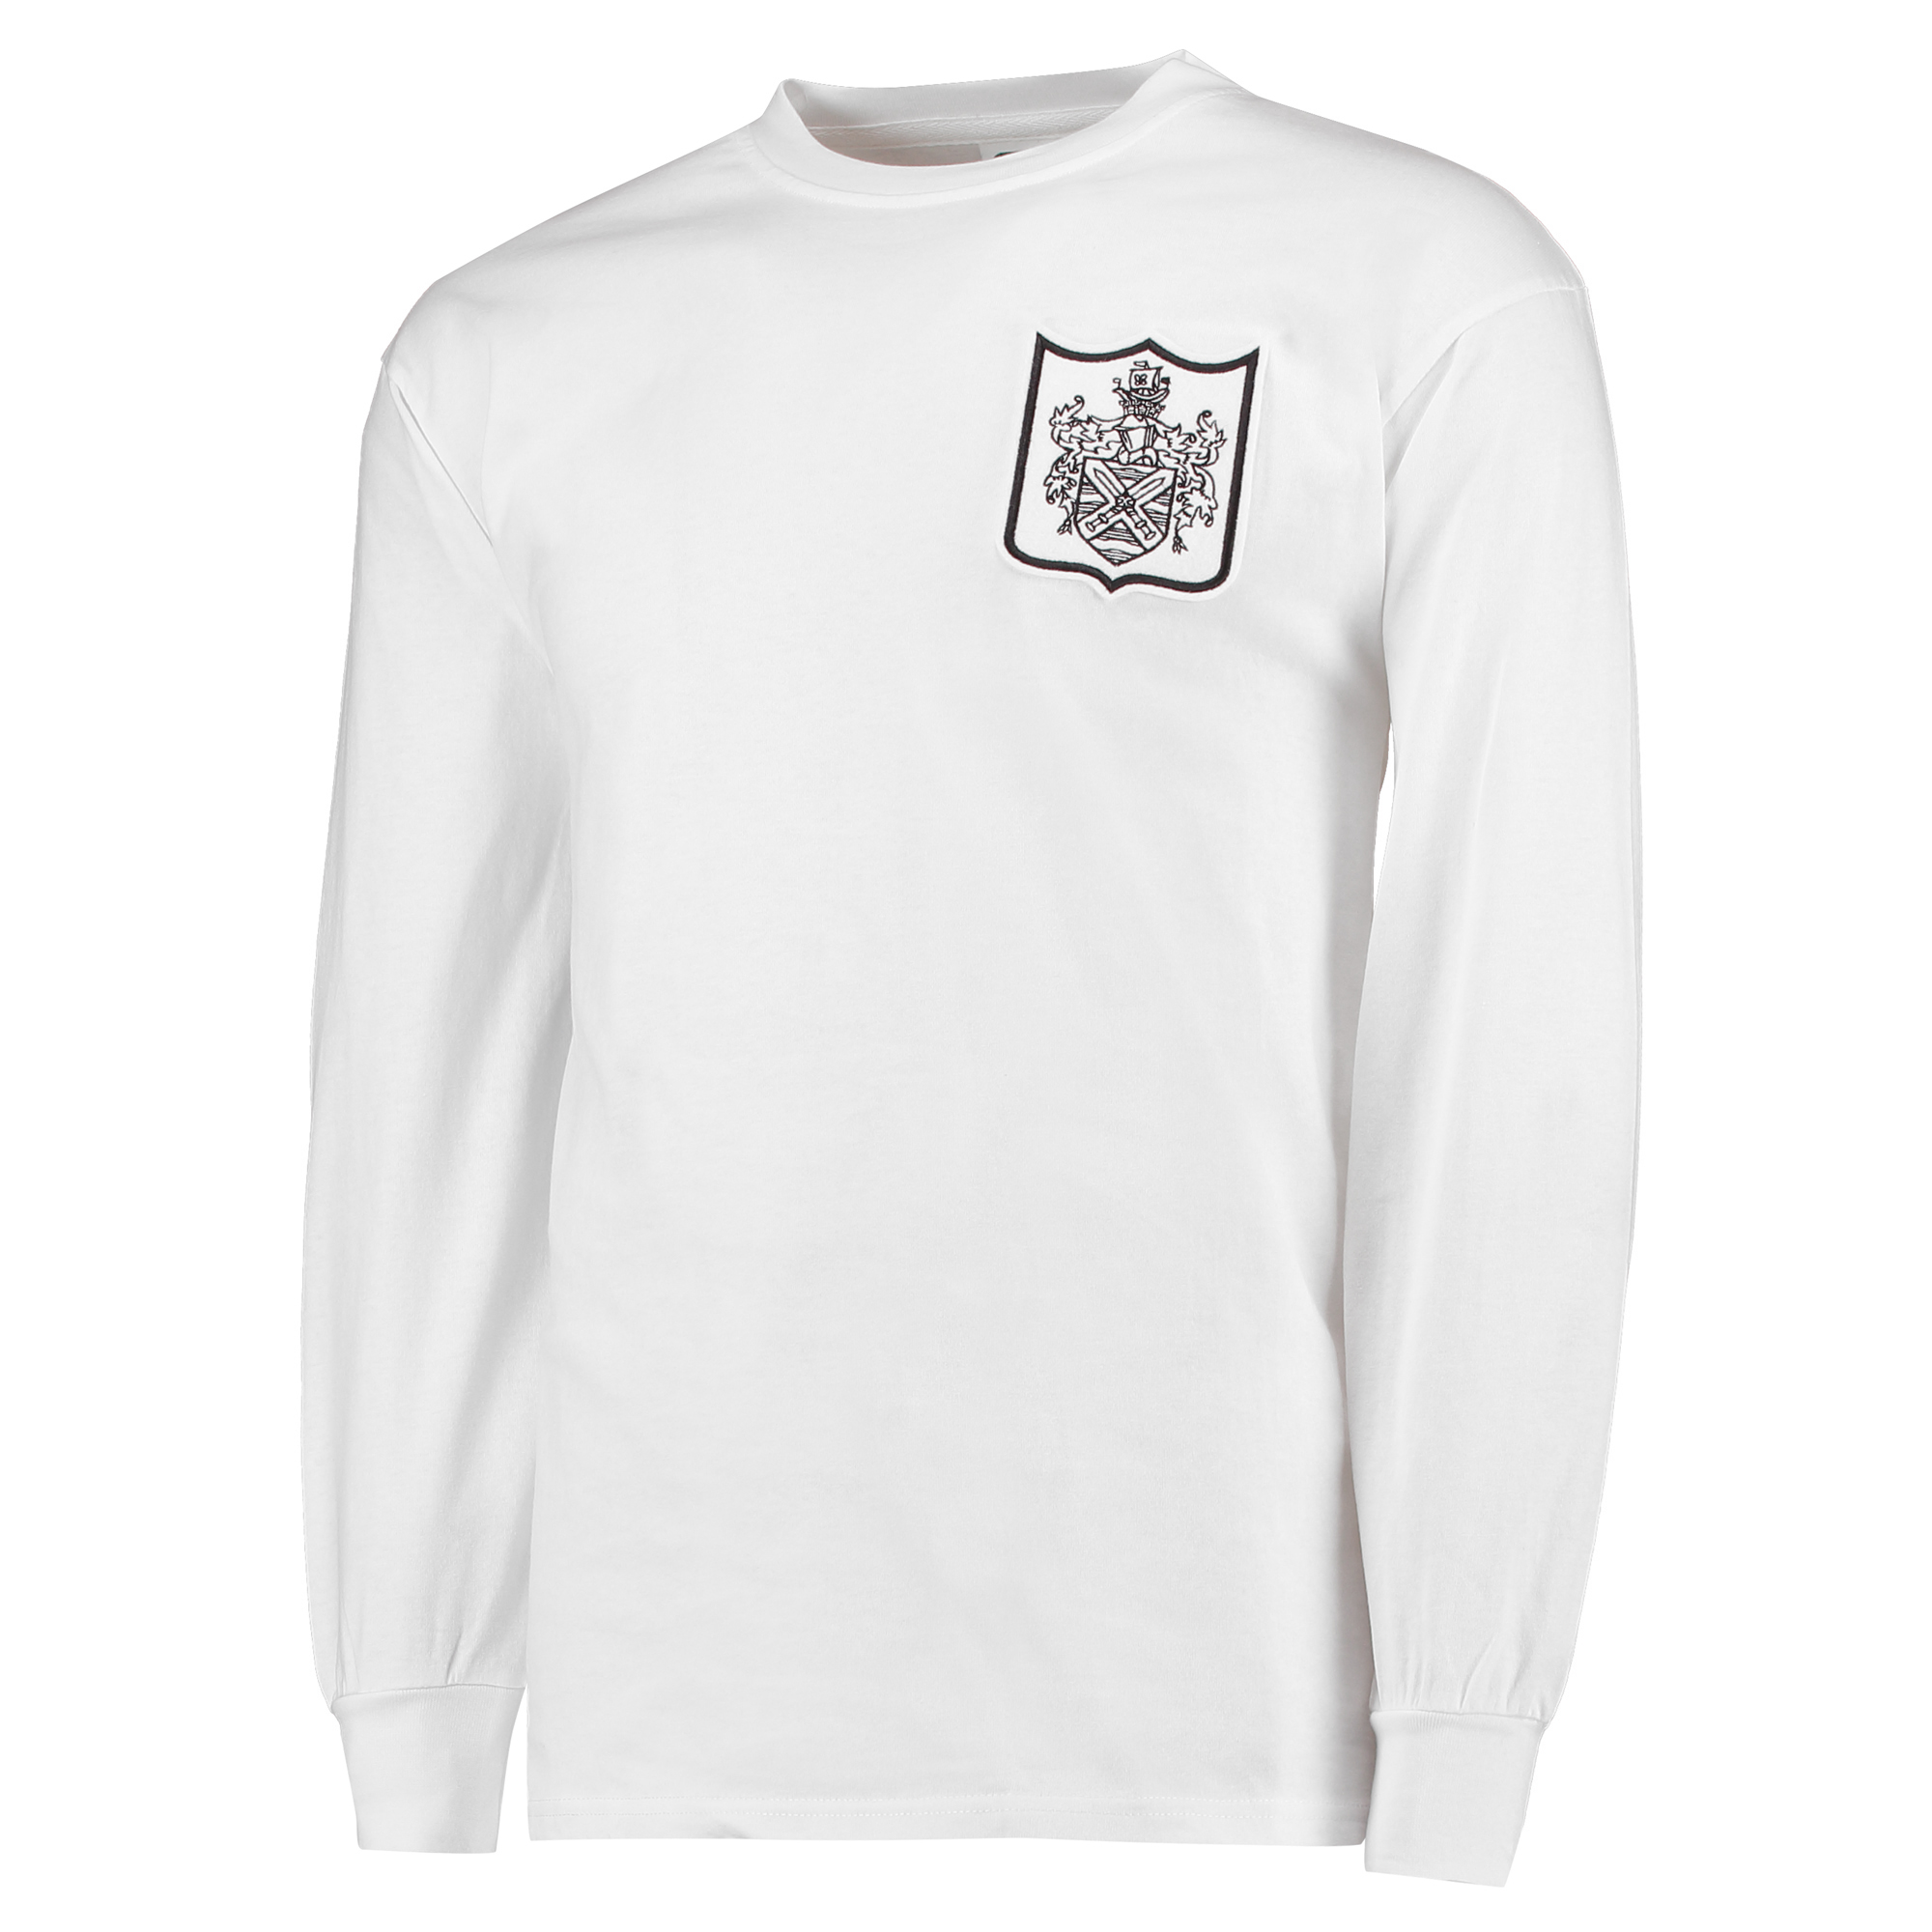 Fulham Retro  shirt